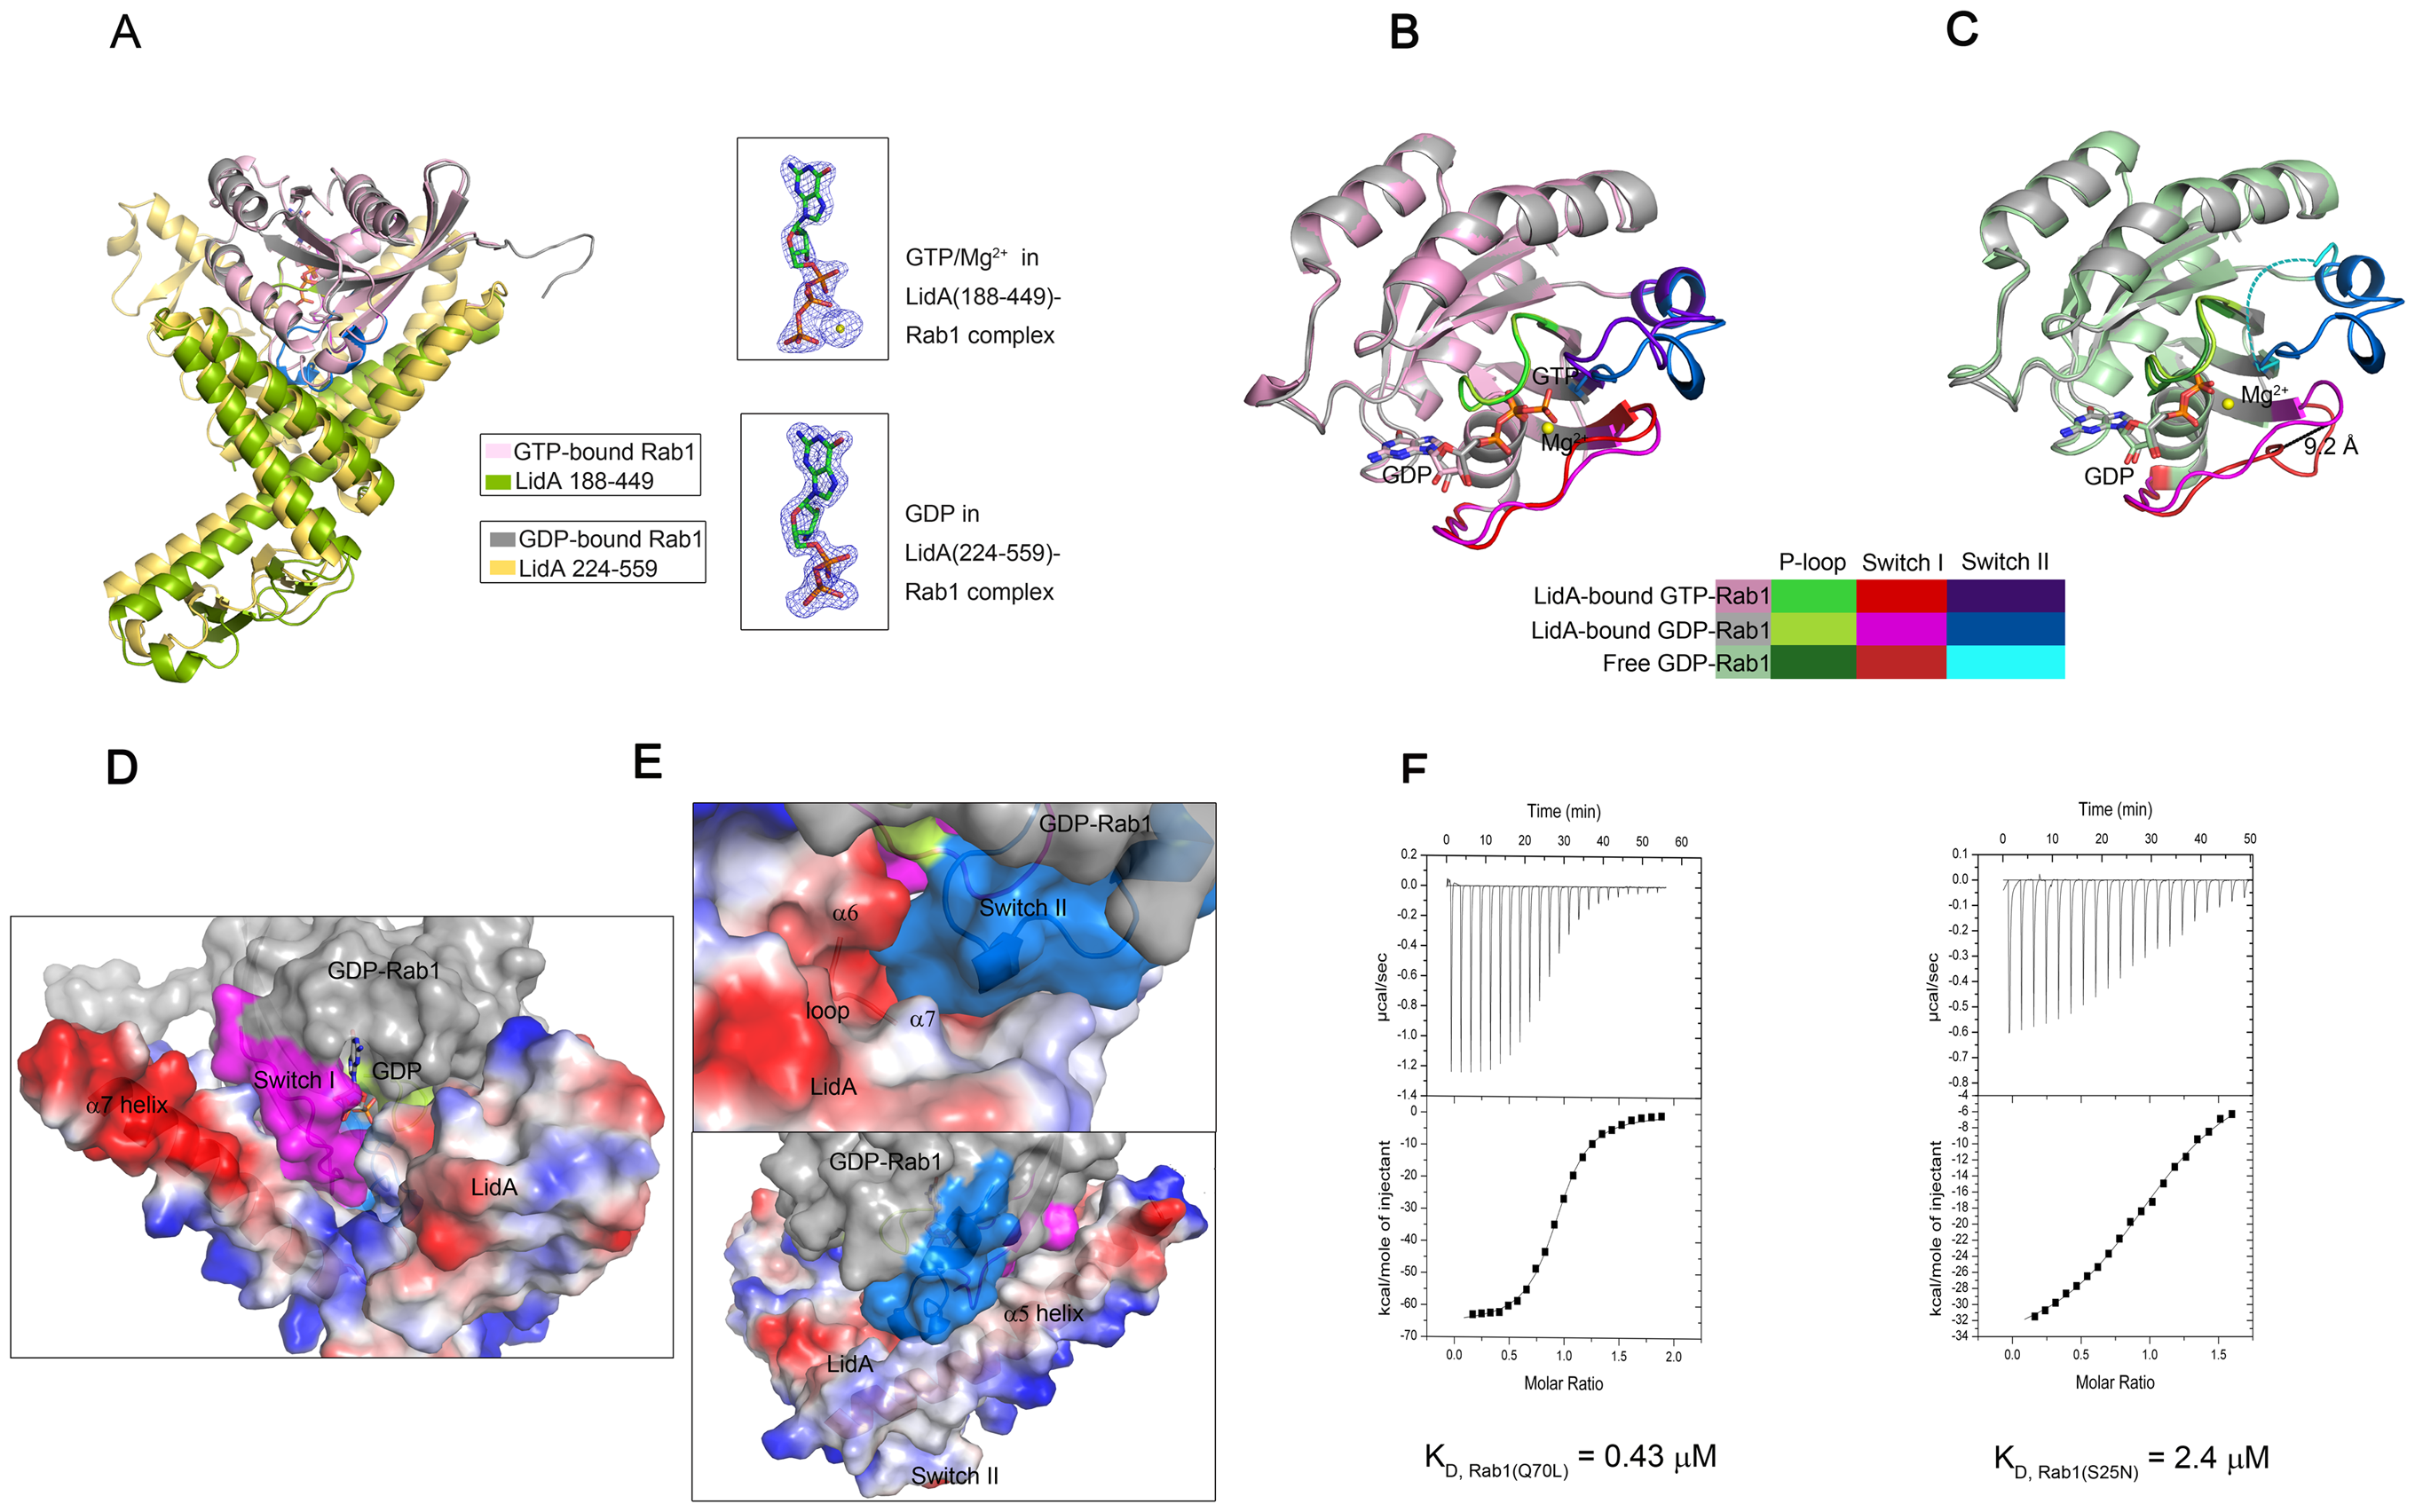 The complexed GDP-bound Rab1 (S25N) is held in the active conformation.